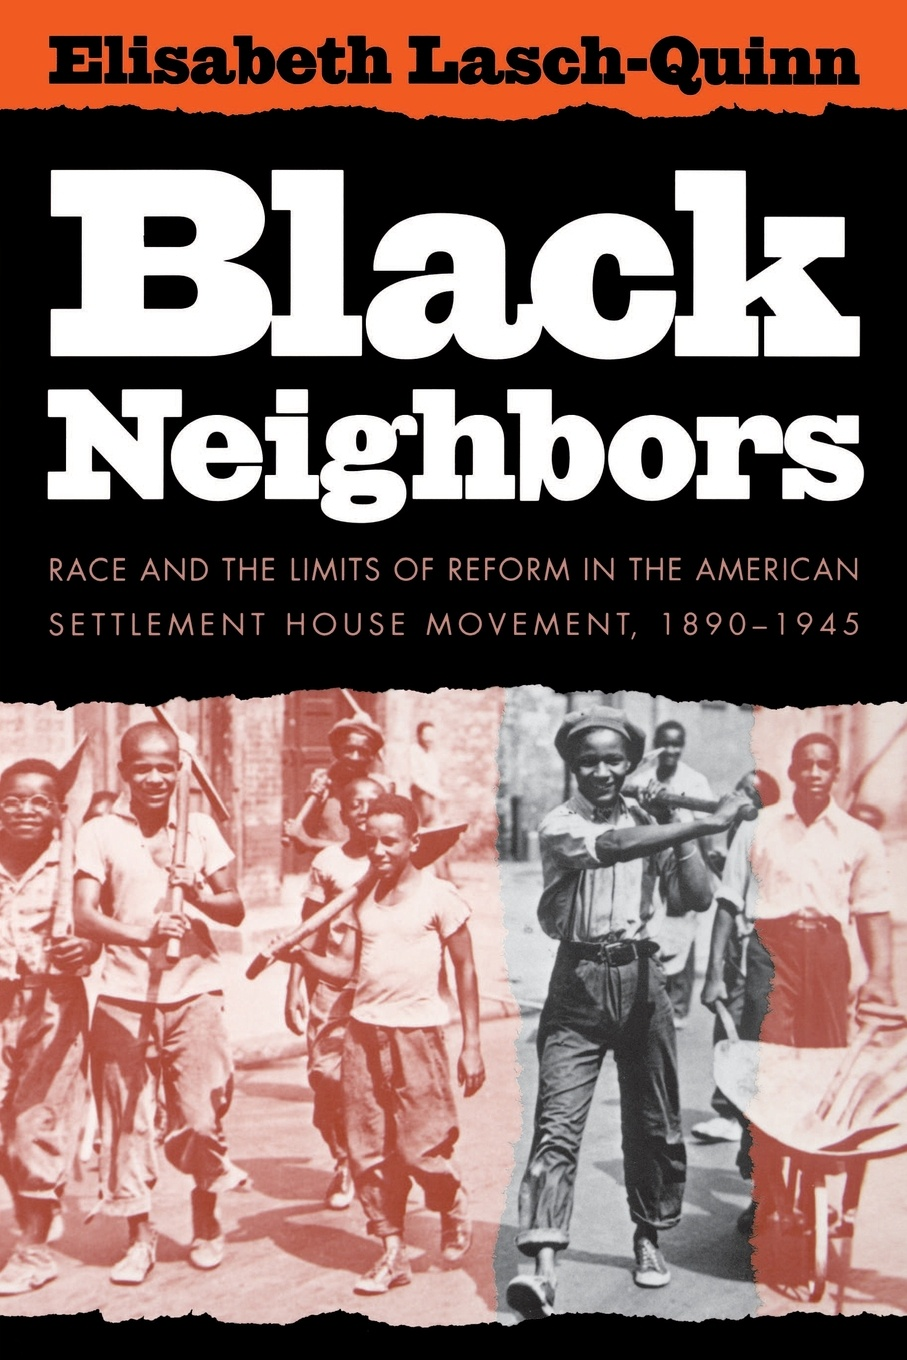 Elisabeth Lasch-Quinn, Elizabeth Lasch-Quinn Black Neighbors. Race and the Limits of Reform in the American Settlement House Movement, 1890-1945 ralph b levering american opinion and the russian alliance 1939 1945